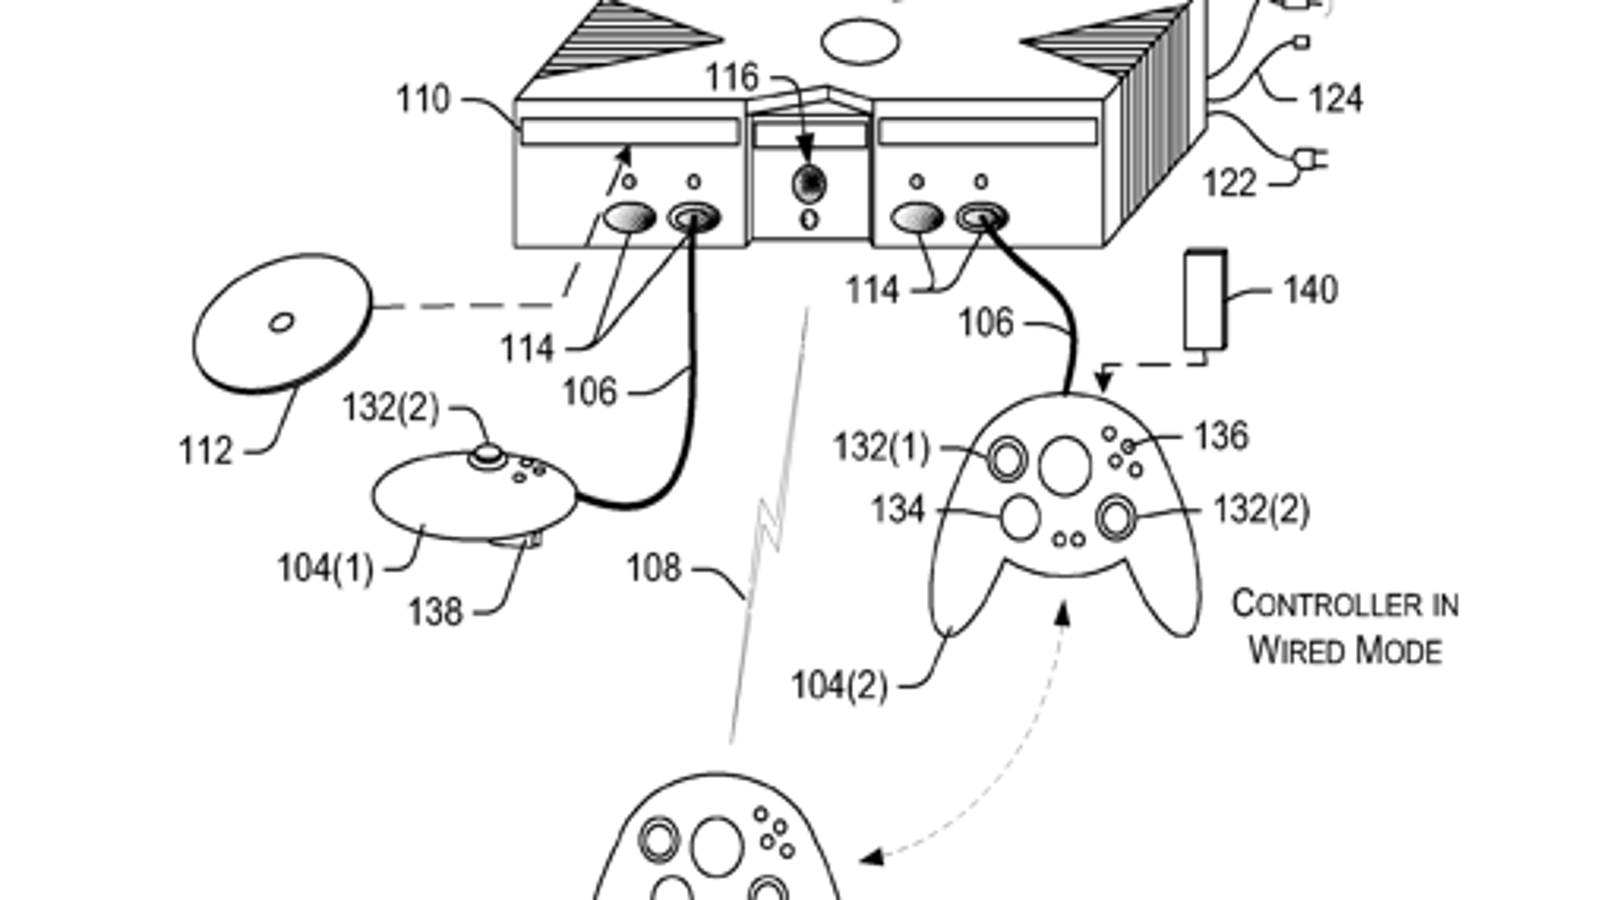 Microsoft Patent Shows A Dual Mode Xbox 360 Controller